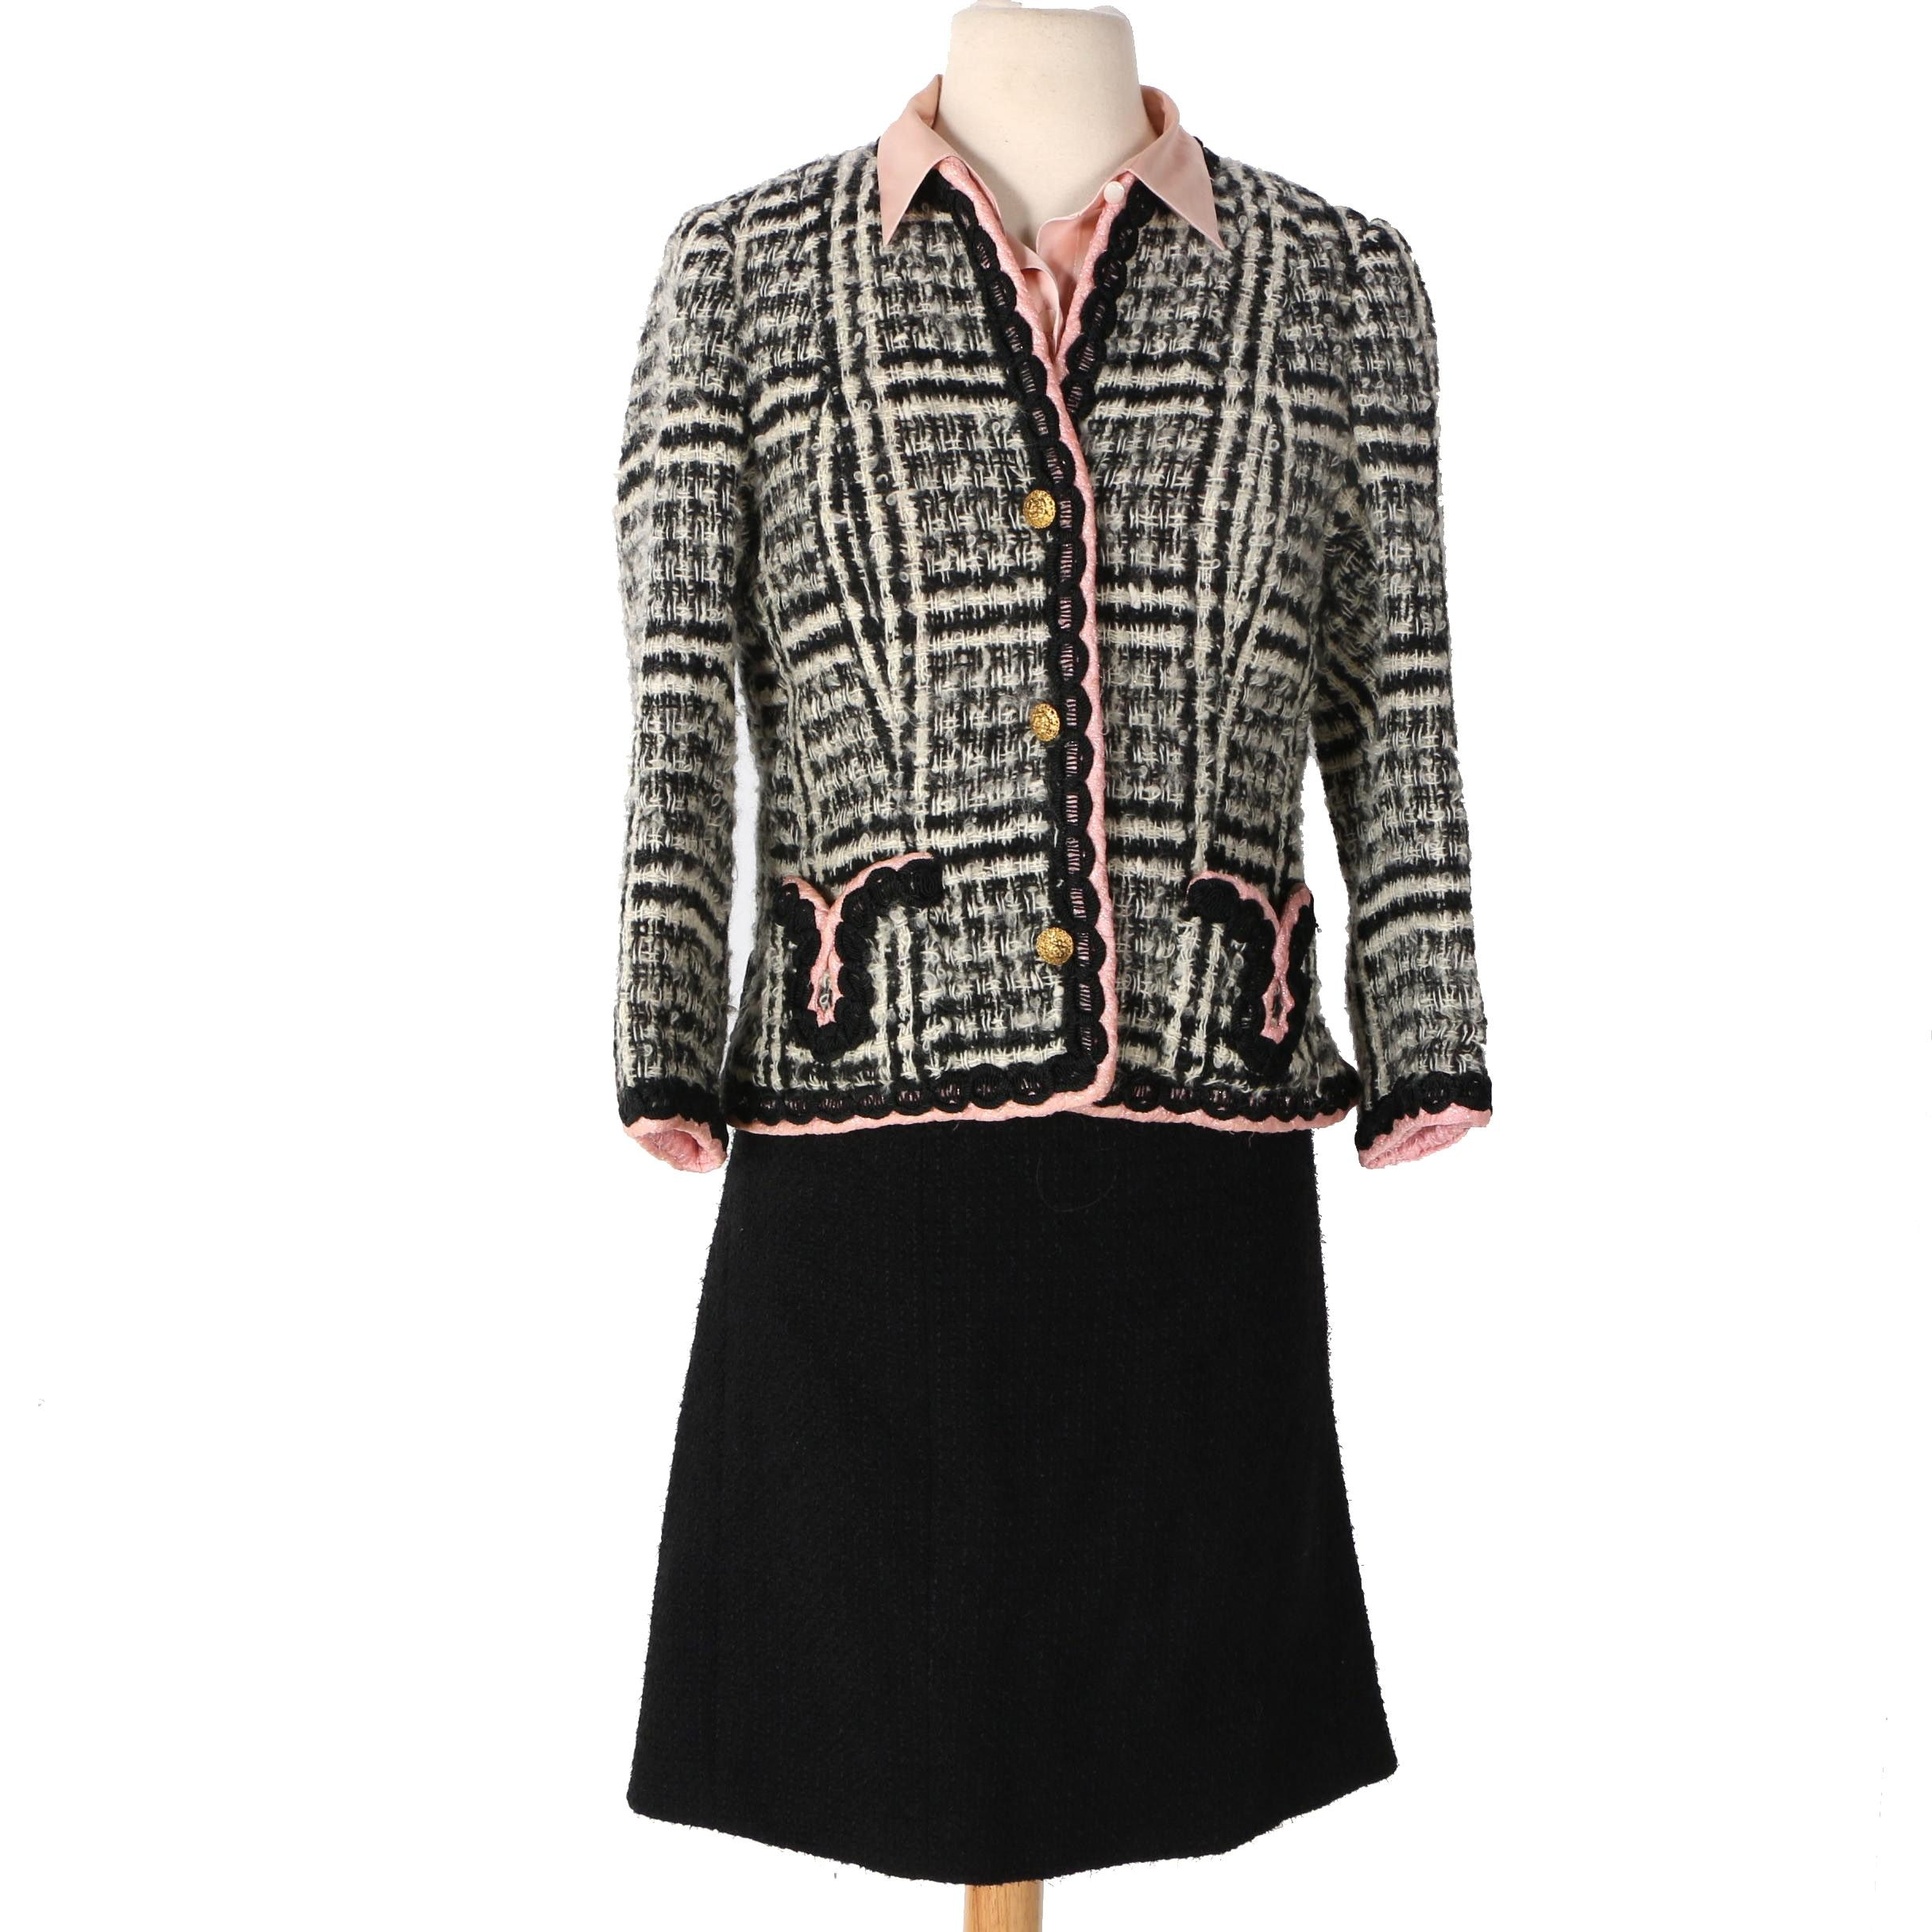 Women's Clothing Including Chanel Separates